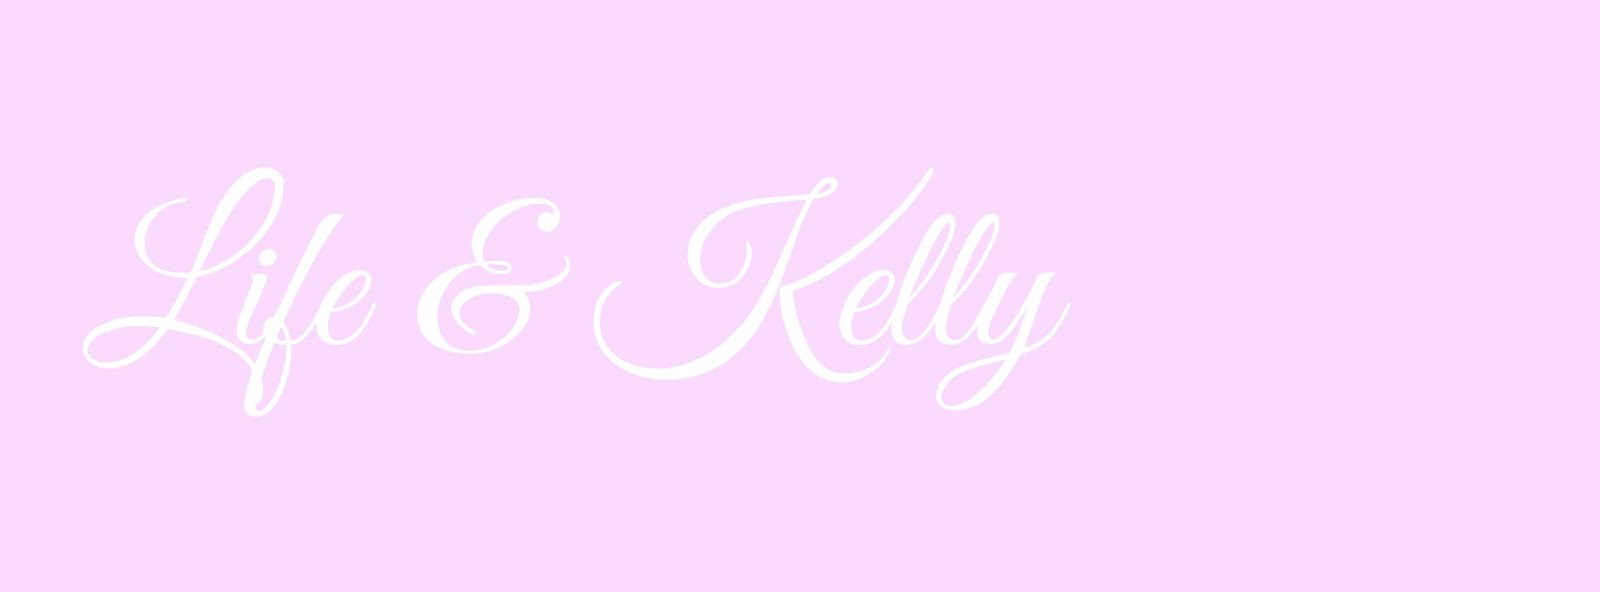 Life and Kelly